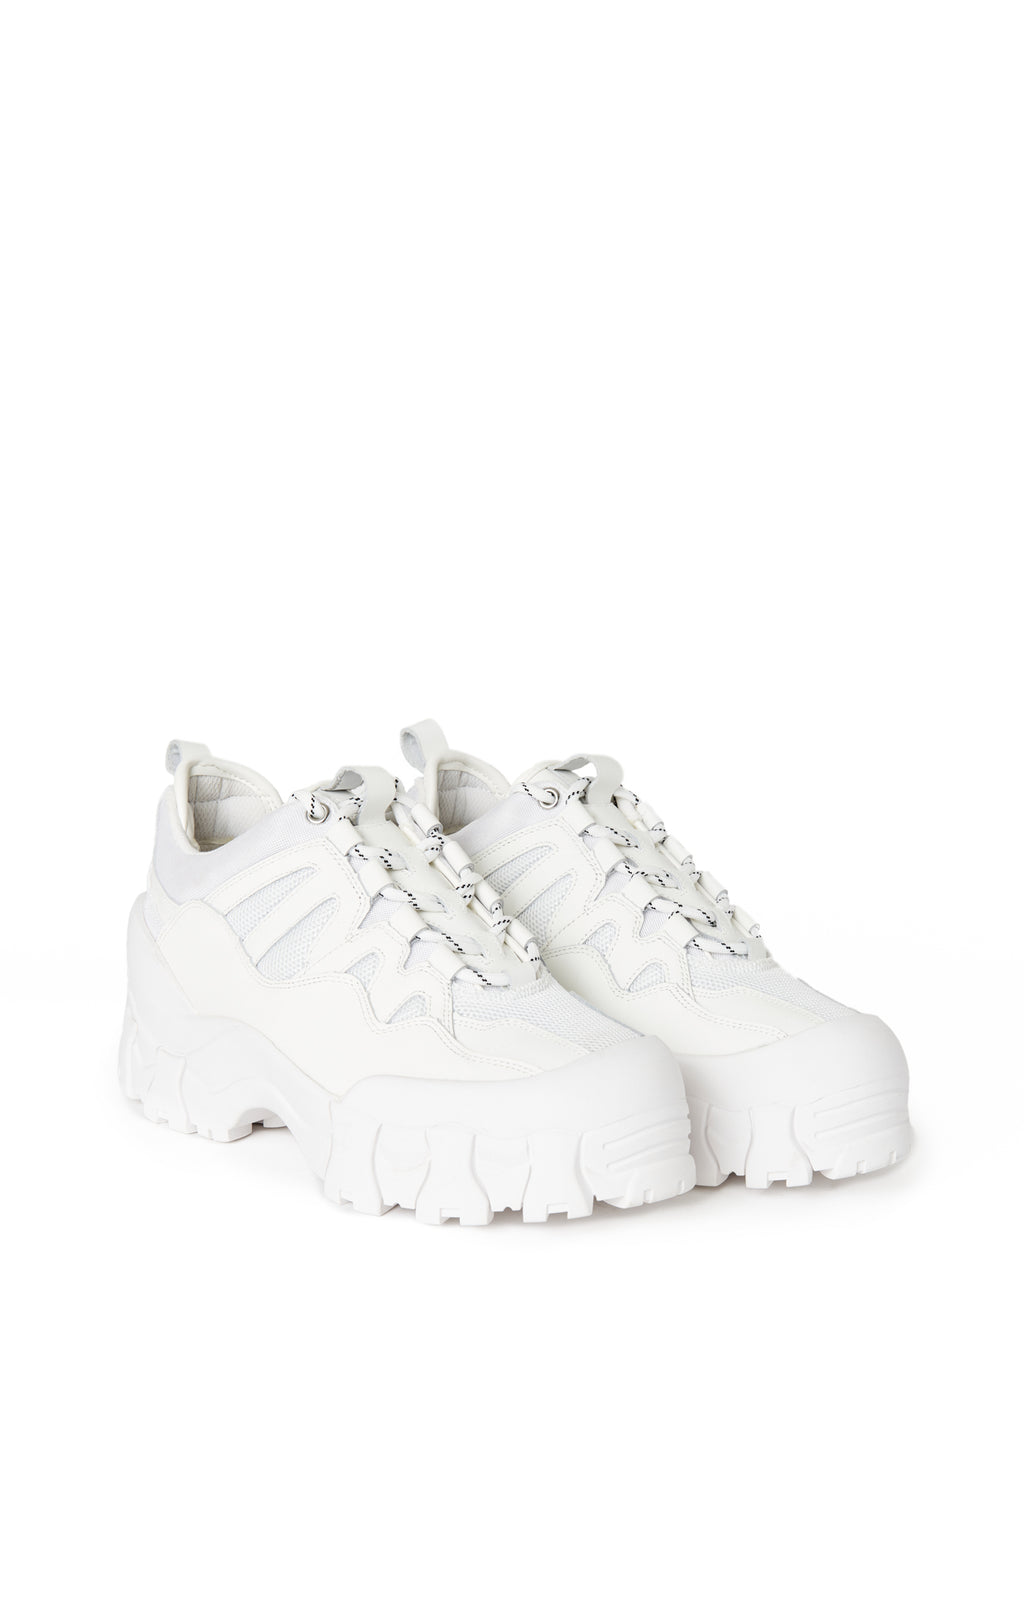 HYPE CHUNKY SNEAKER – LF Stores